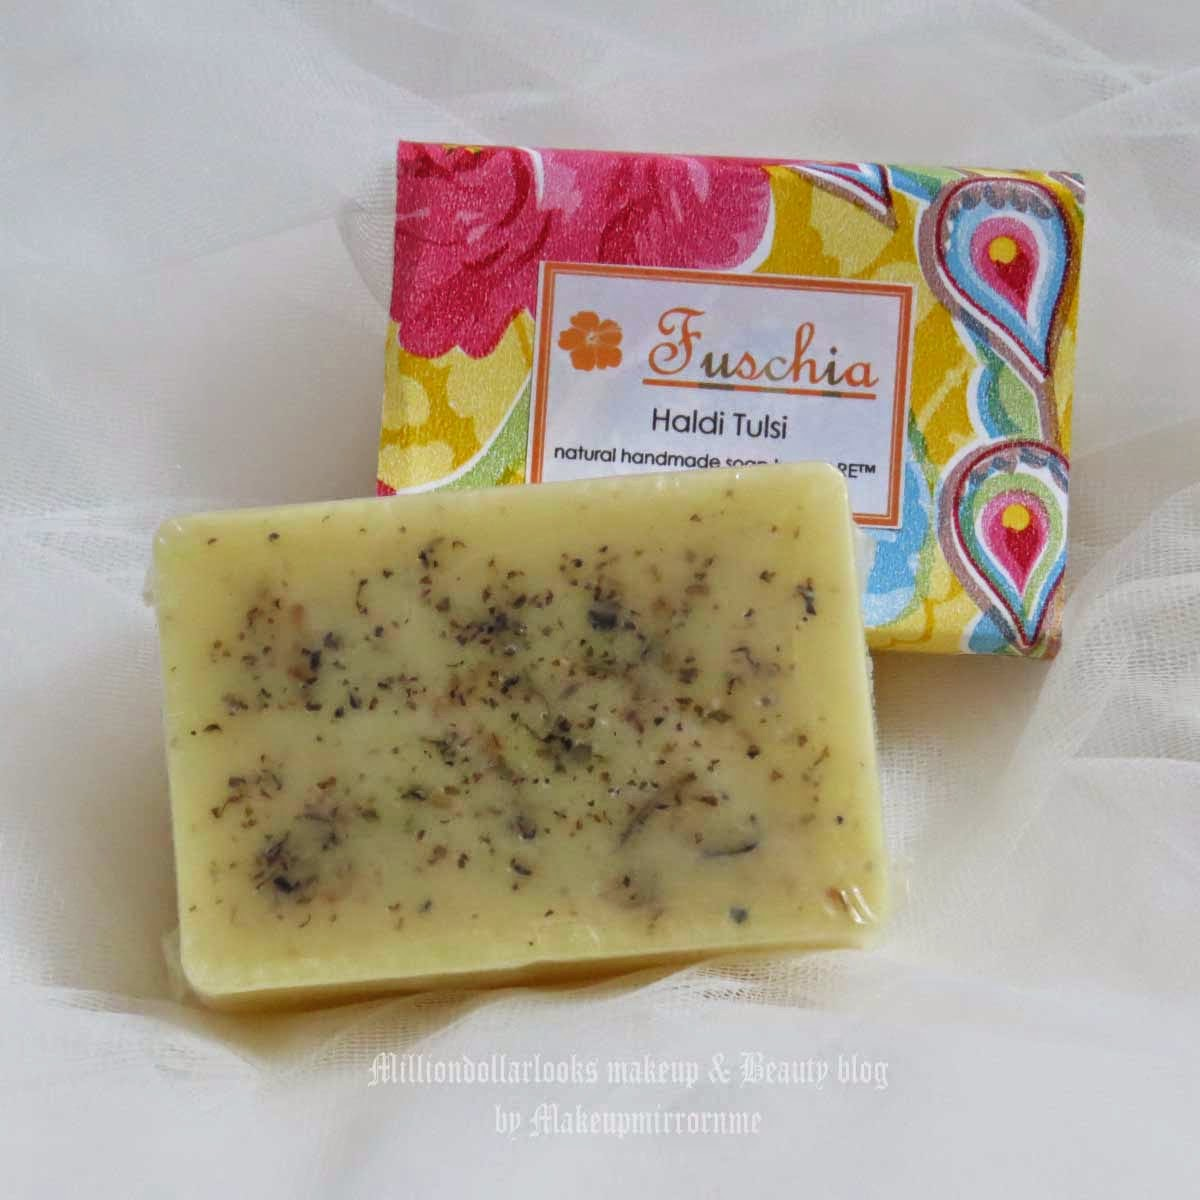 Fuschia Haldi Tulsi Natural Handmade Soap Review & Pictures, Indian beauty blogger, Fuschia handmade soaps, Fuschia handmade soaps review and price, Indian beauty blog, Bath products from Fuschia, Top beauty blogs in India, Indian makeup and beauty blog, MillionDollarLooks makeup and beauty blog, Herbal handmade soaps India, Handmade soap India, Haldi tulsi benefits, Haldi tulsi soaps, Best soaps for allergic skin, sensitive skin,